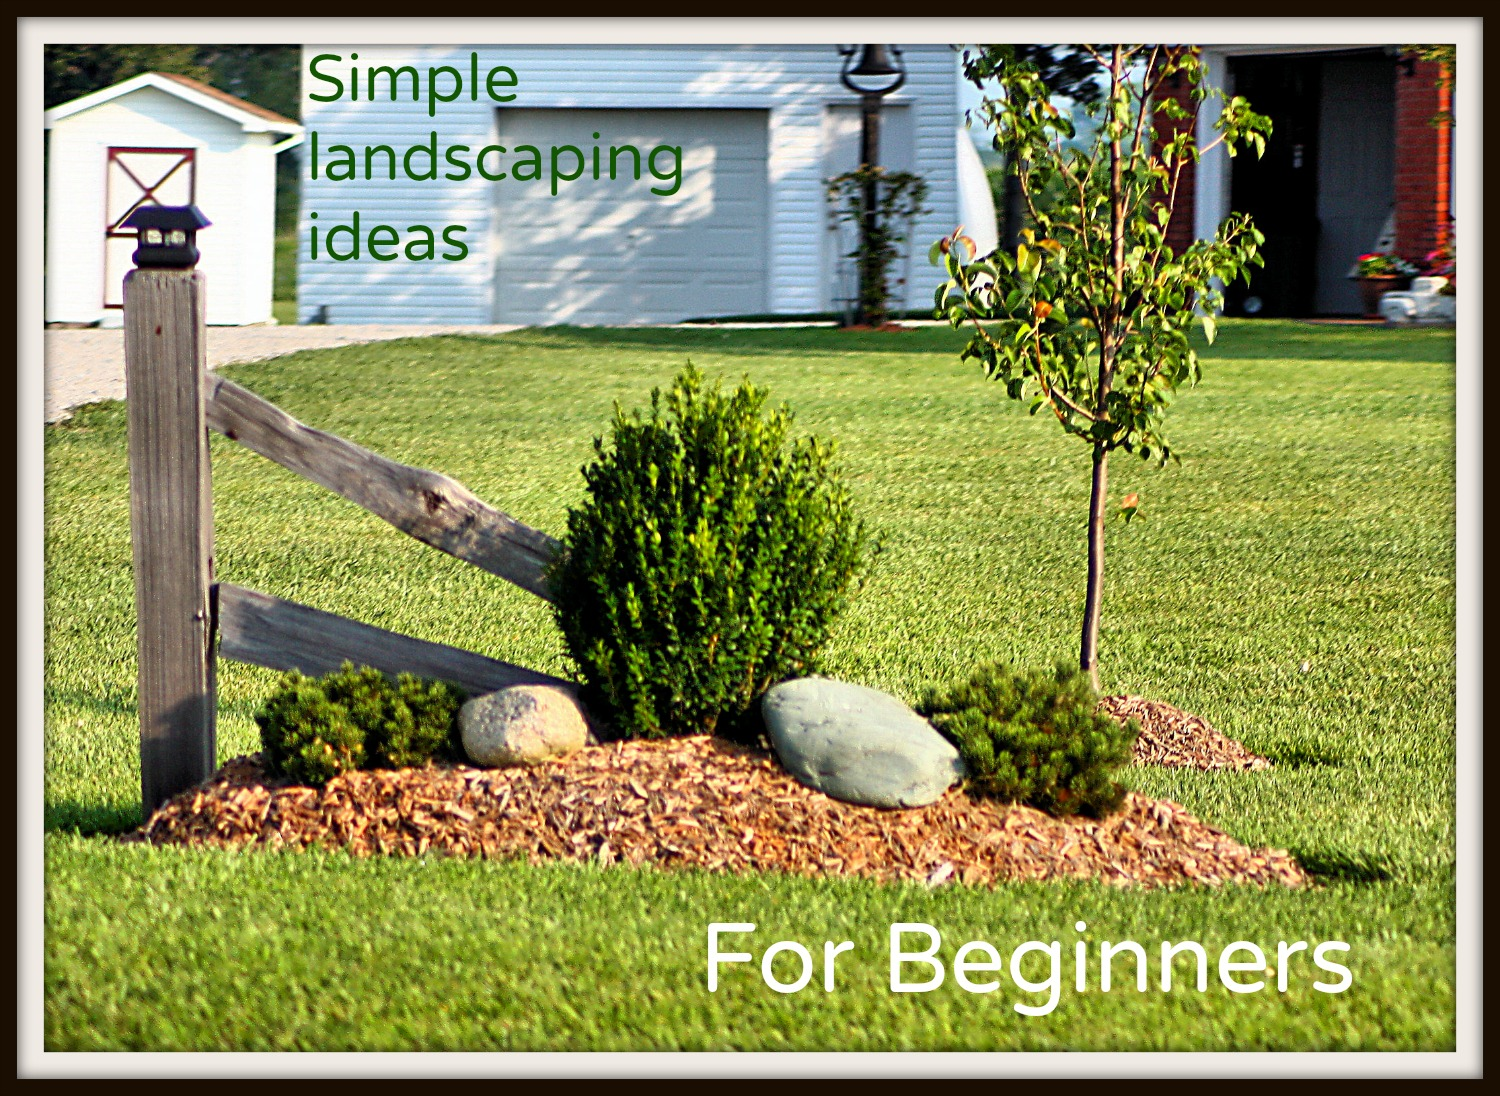 Simple landscaping ideas for beginners frador for Garden designs for beginners